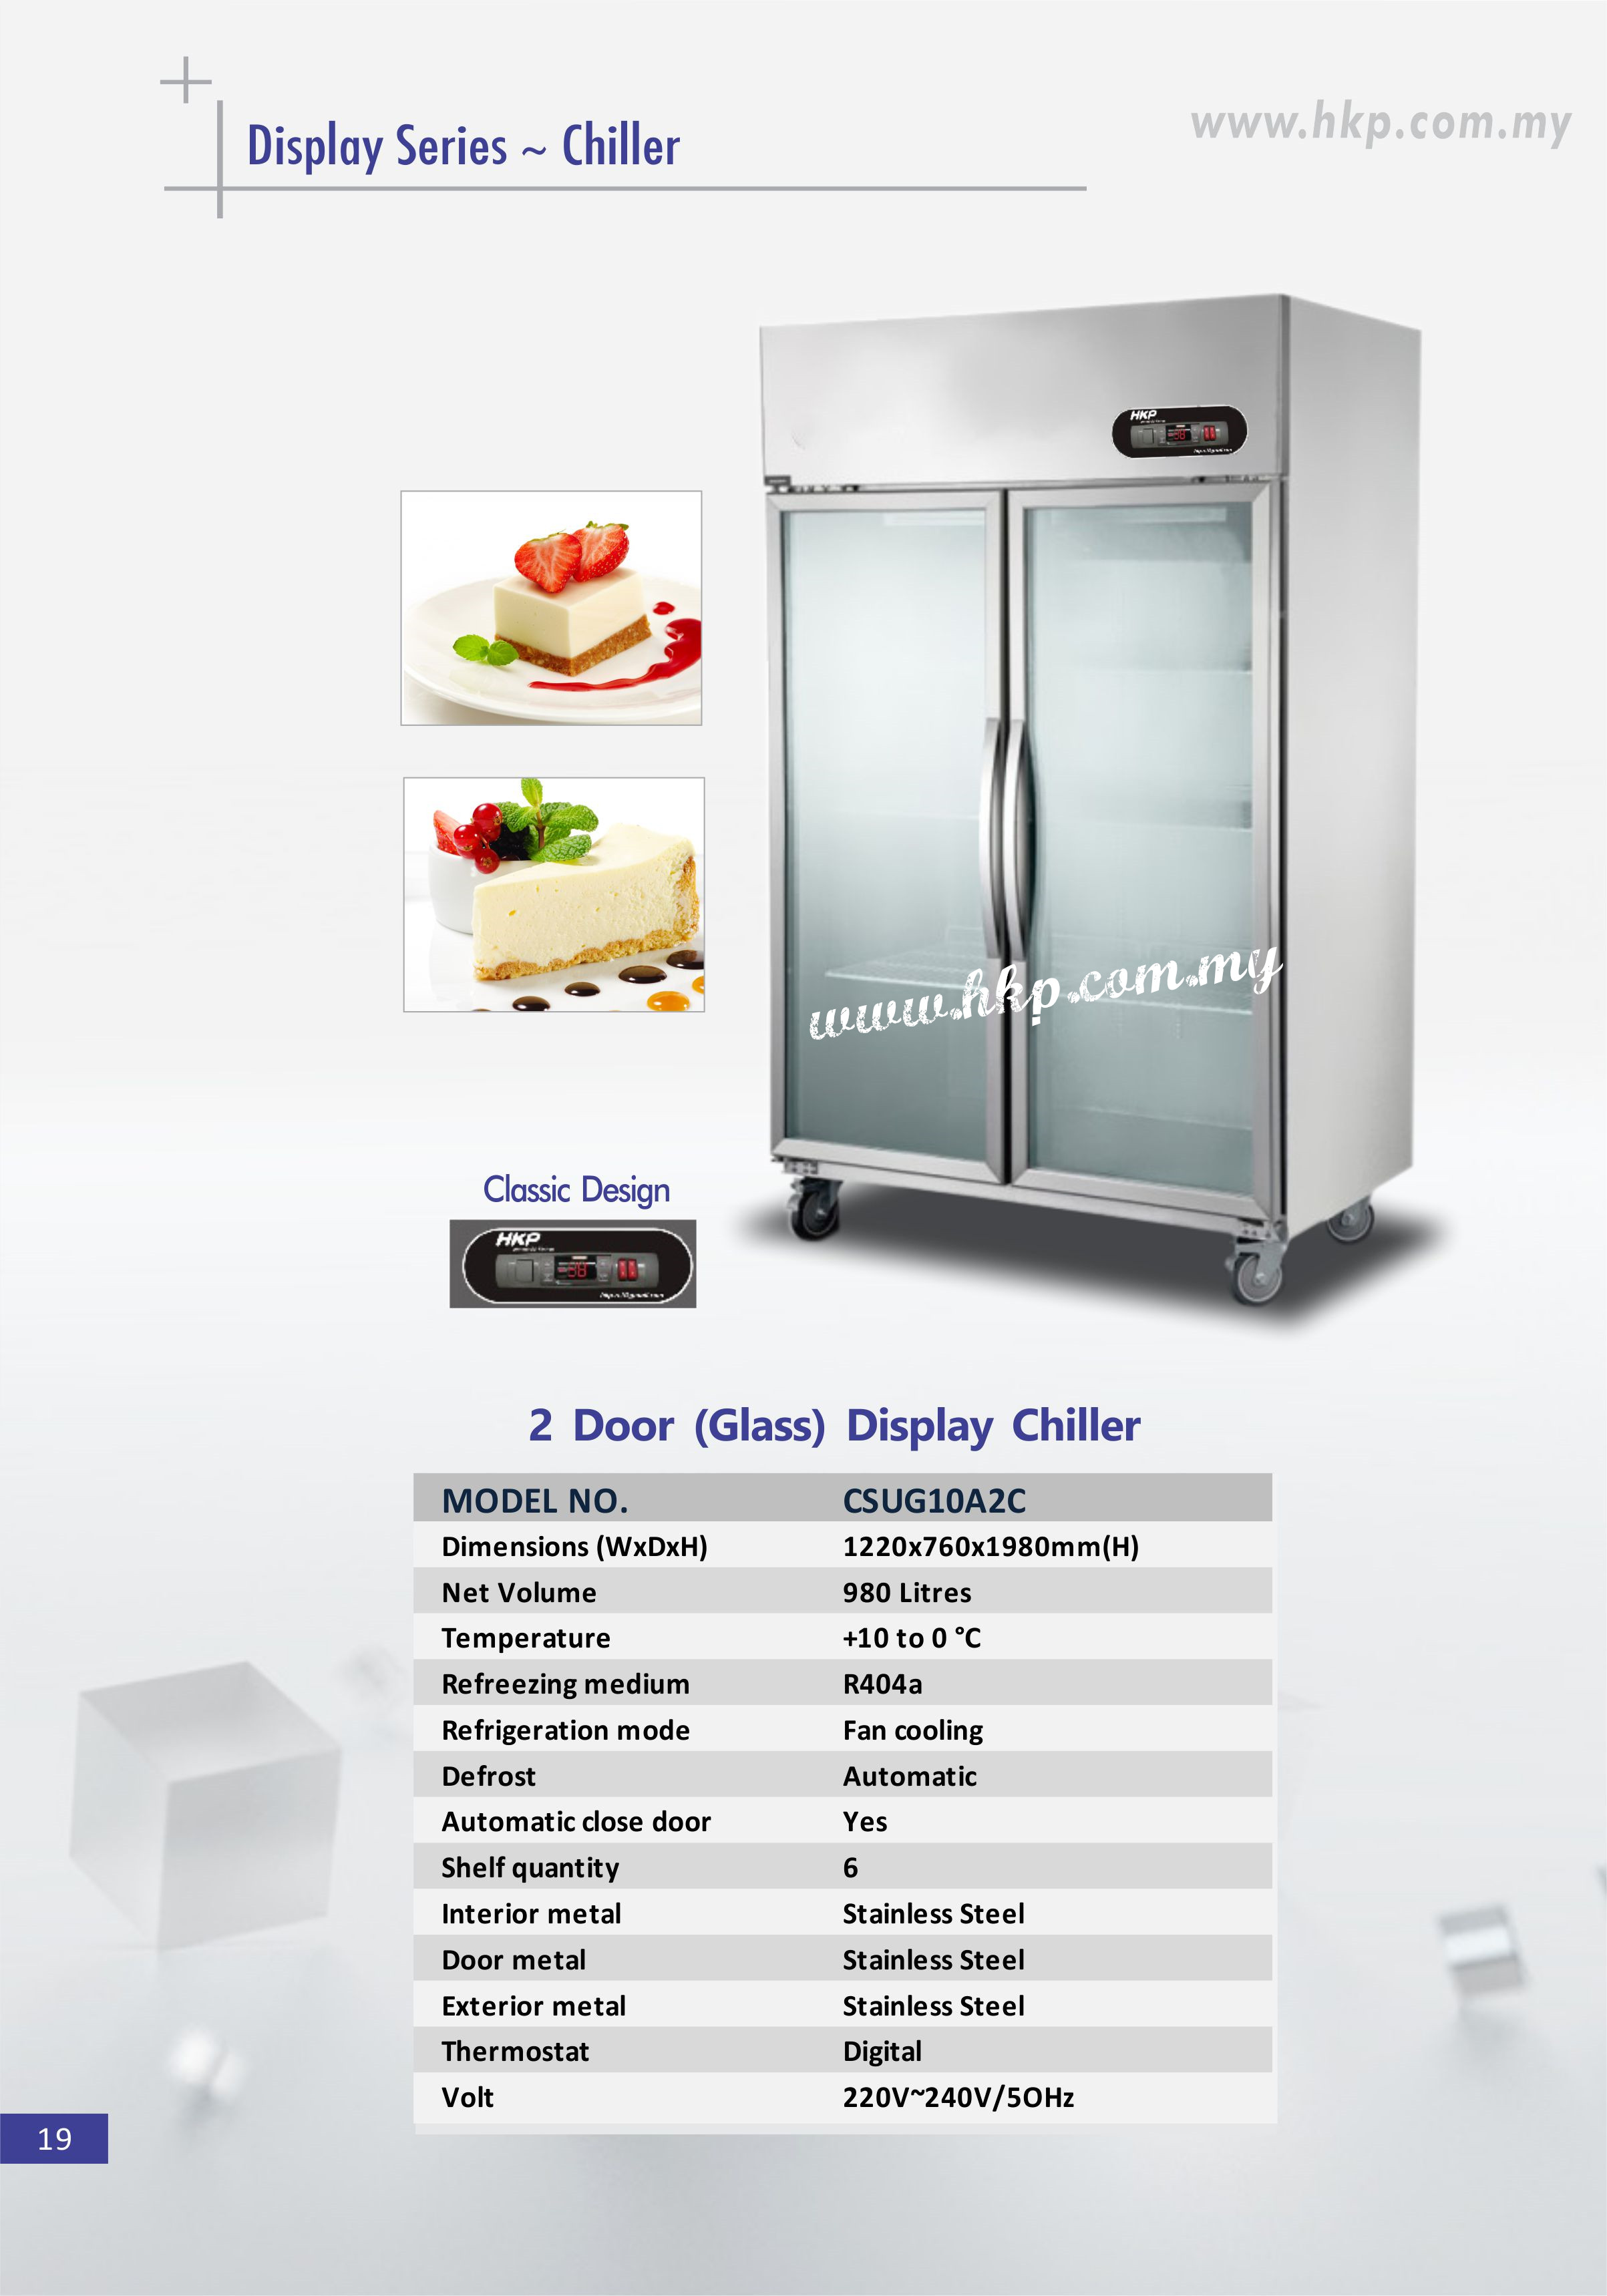 Display Series Chiller Hkp Cold Room Amp Refrigeration